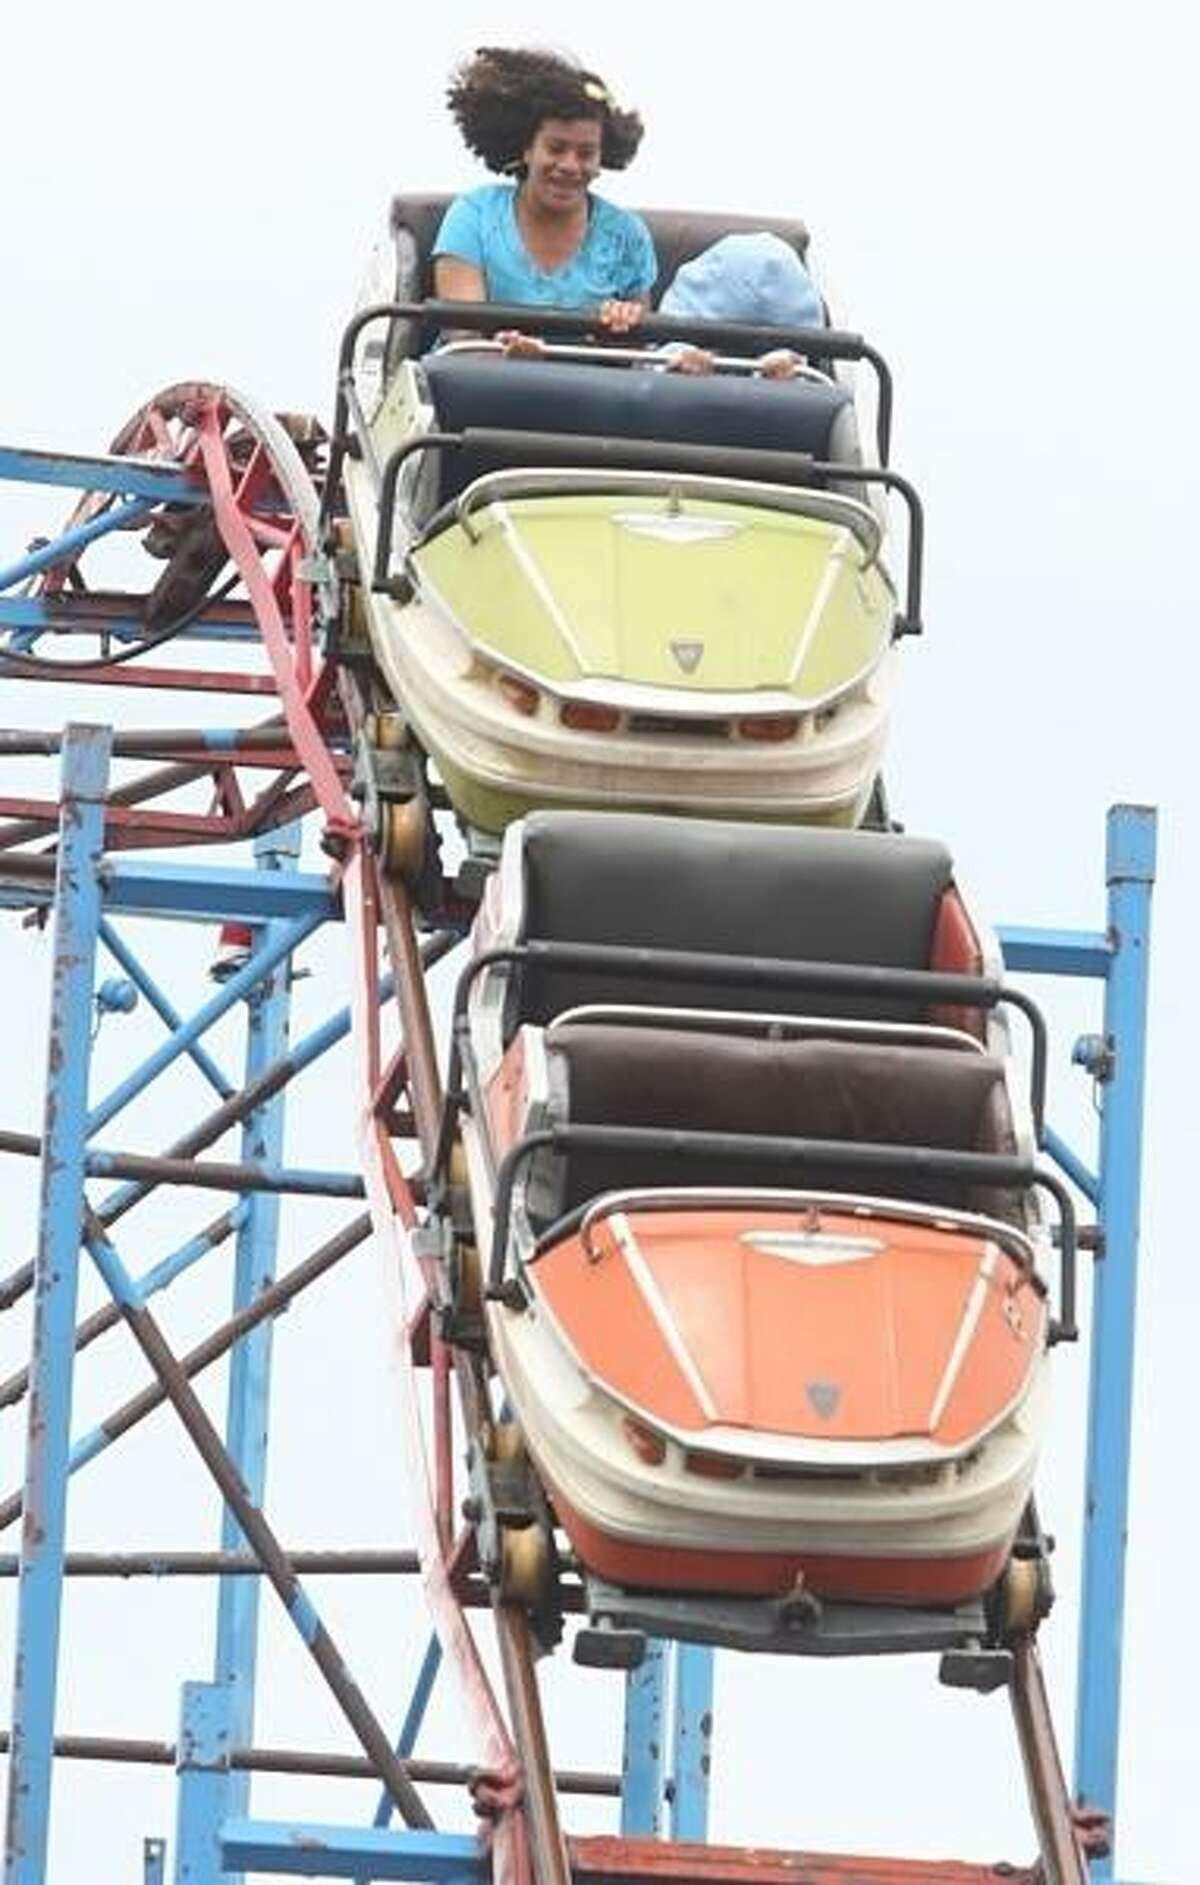 PHOTO BY JOHN HAEGER @ ONEIDAPHOTO ON TWITTER/ONEIDA DAILY DISPATCH Riders hang on as they ride the roller coster at Sylvan Beach Amusement Park on Saturday, May 18, 2013.